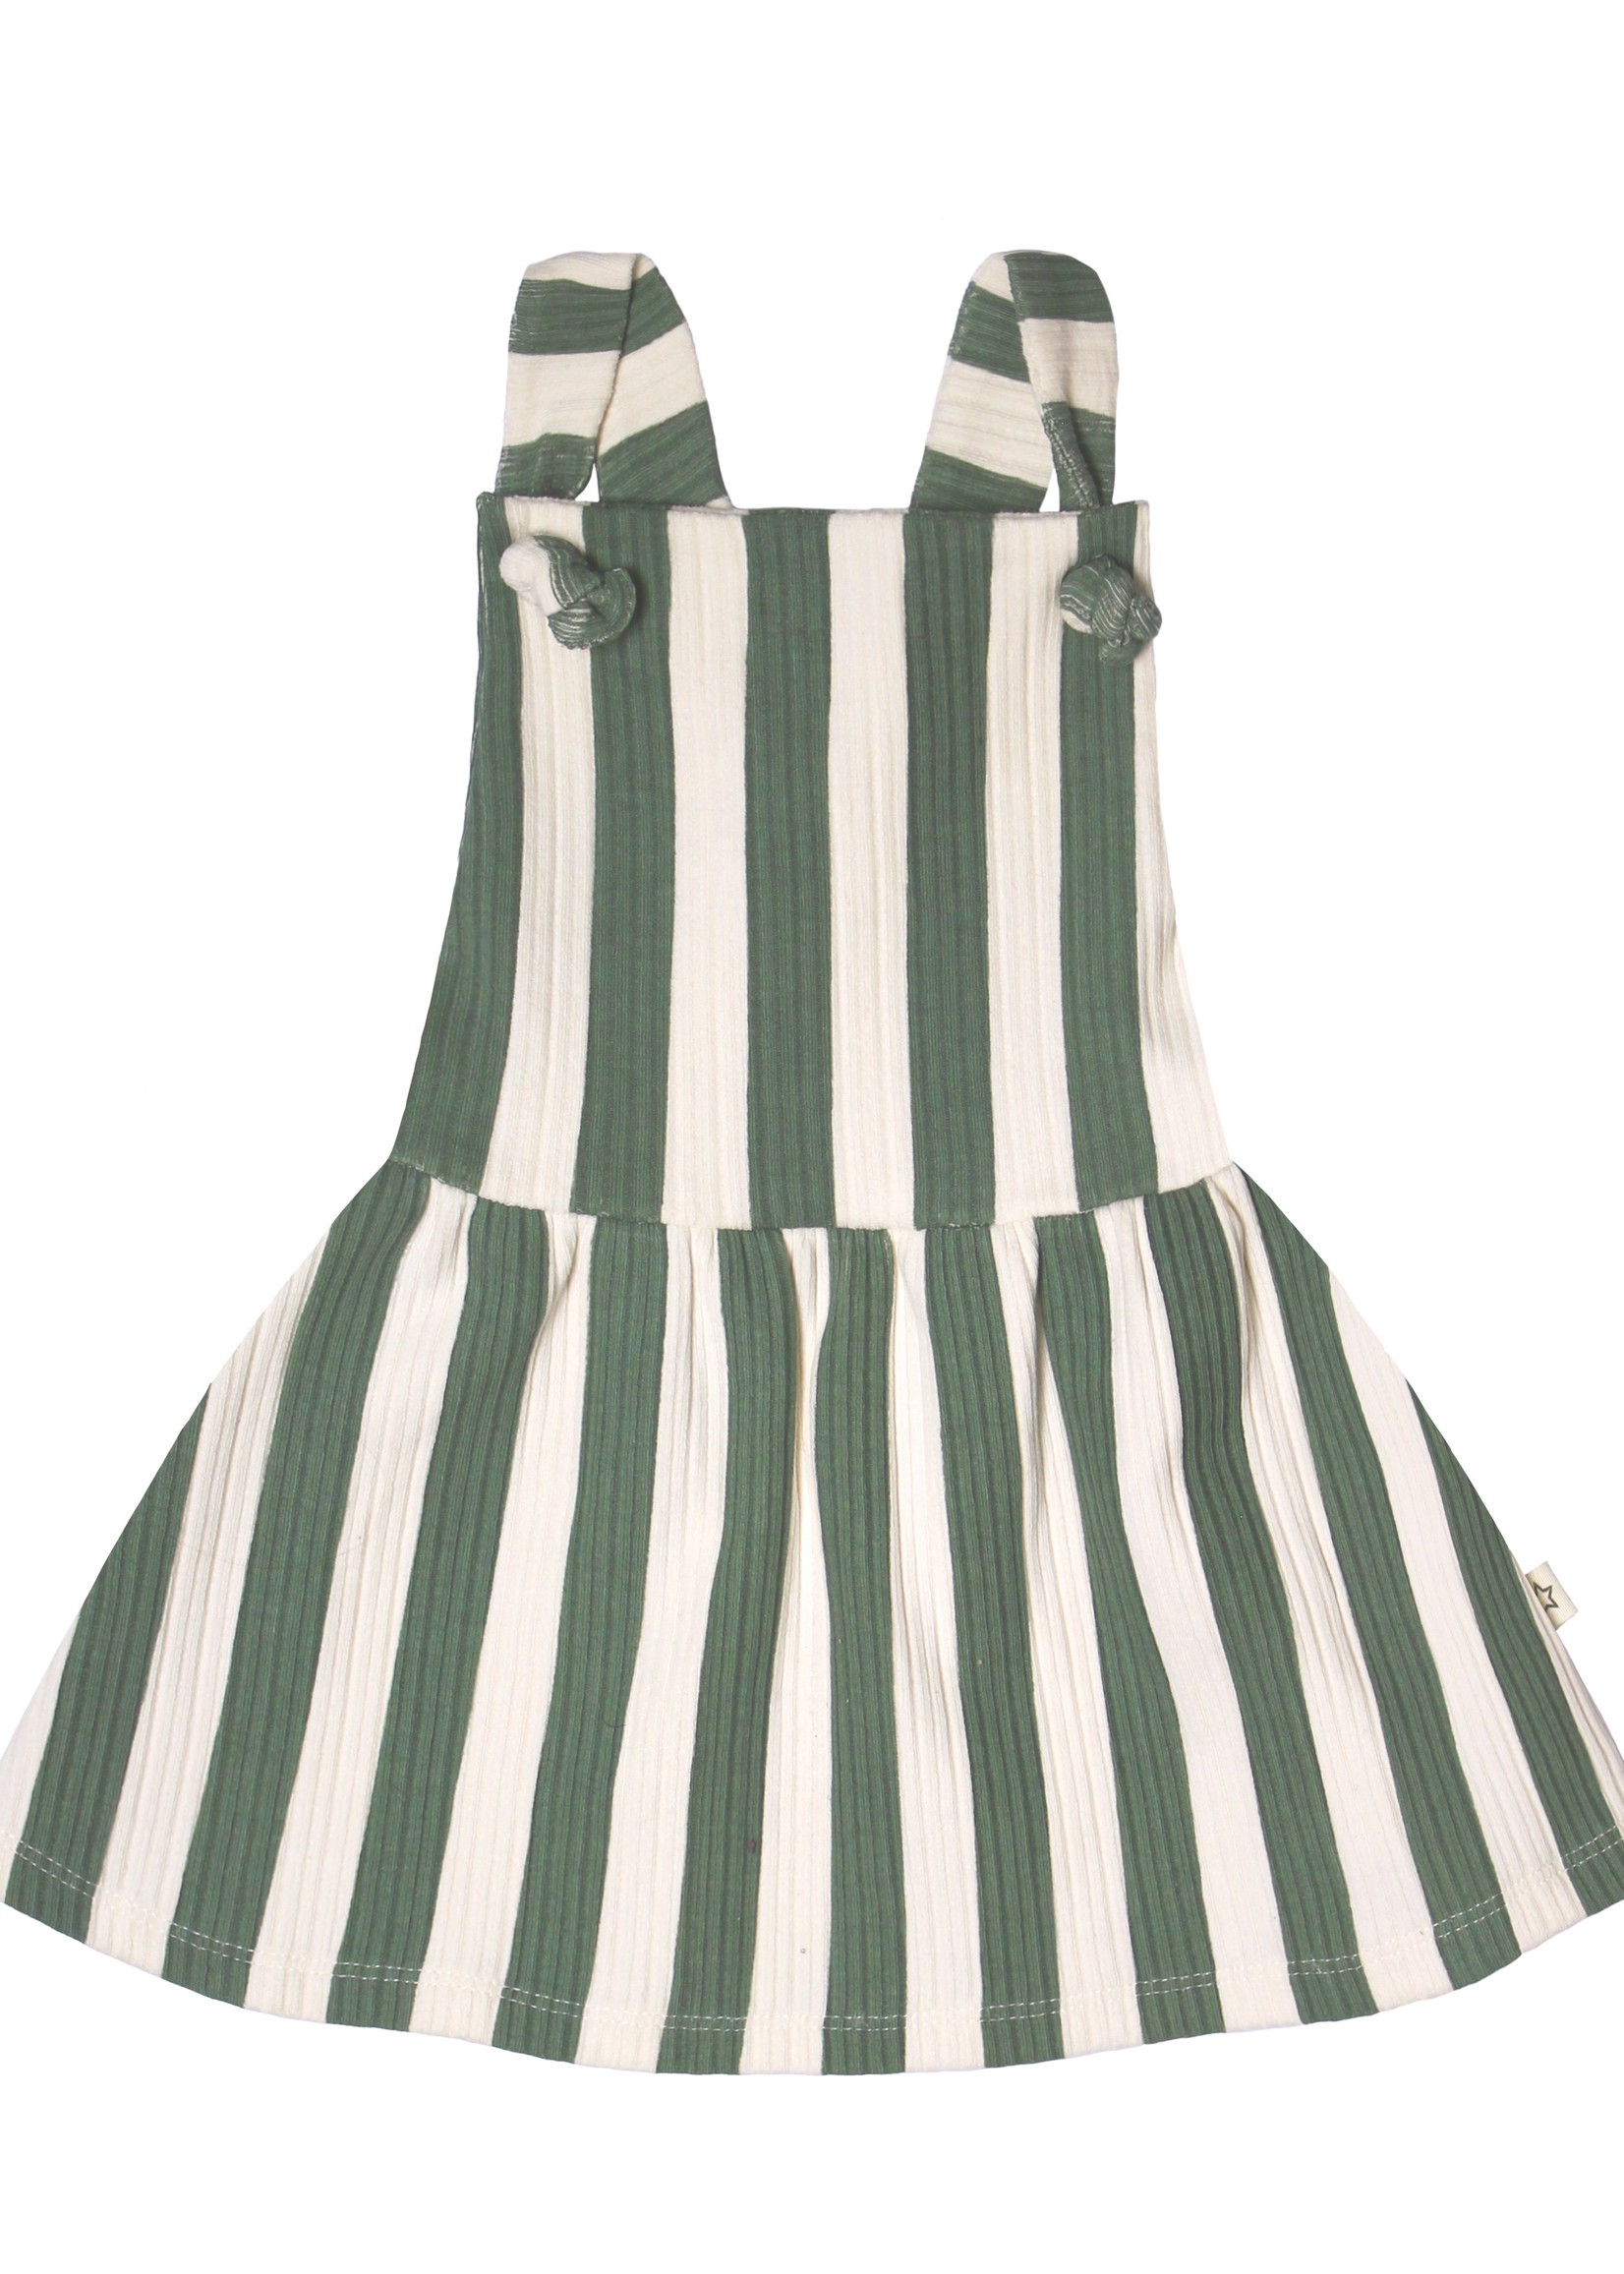 Your Wishes YW - Bold Stripes | Dungaree Dress